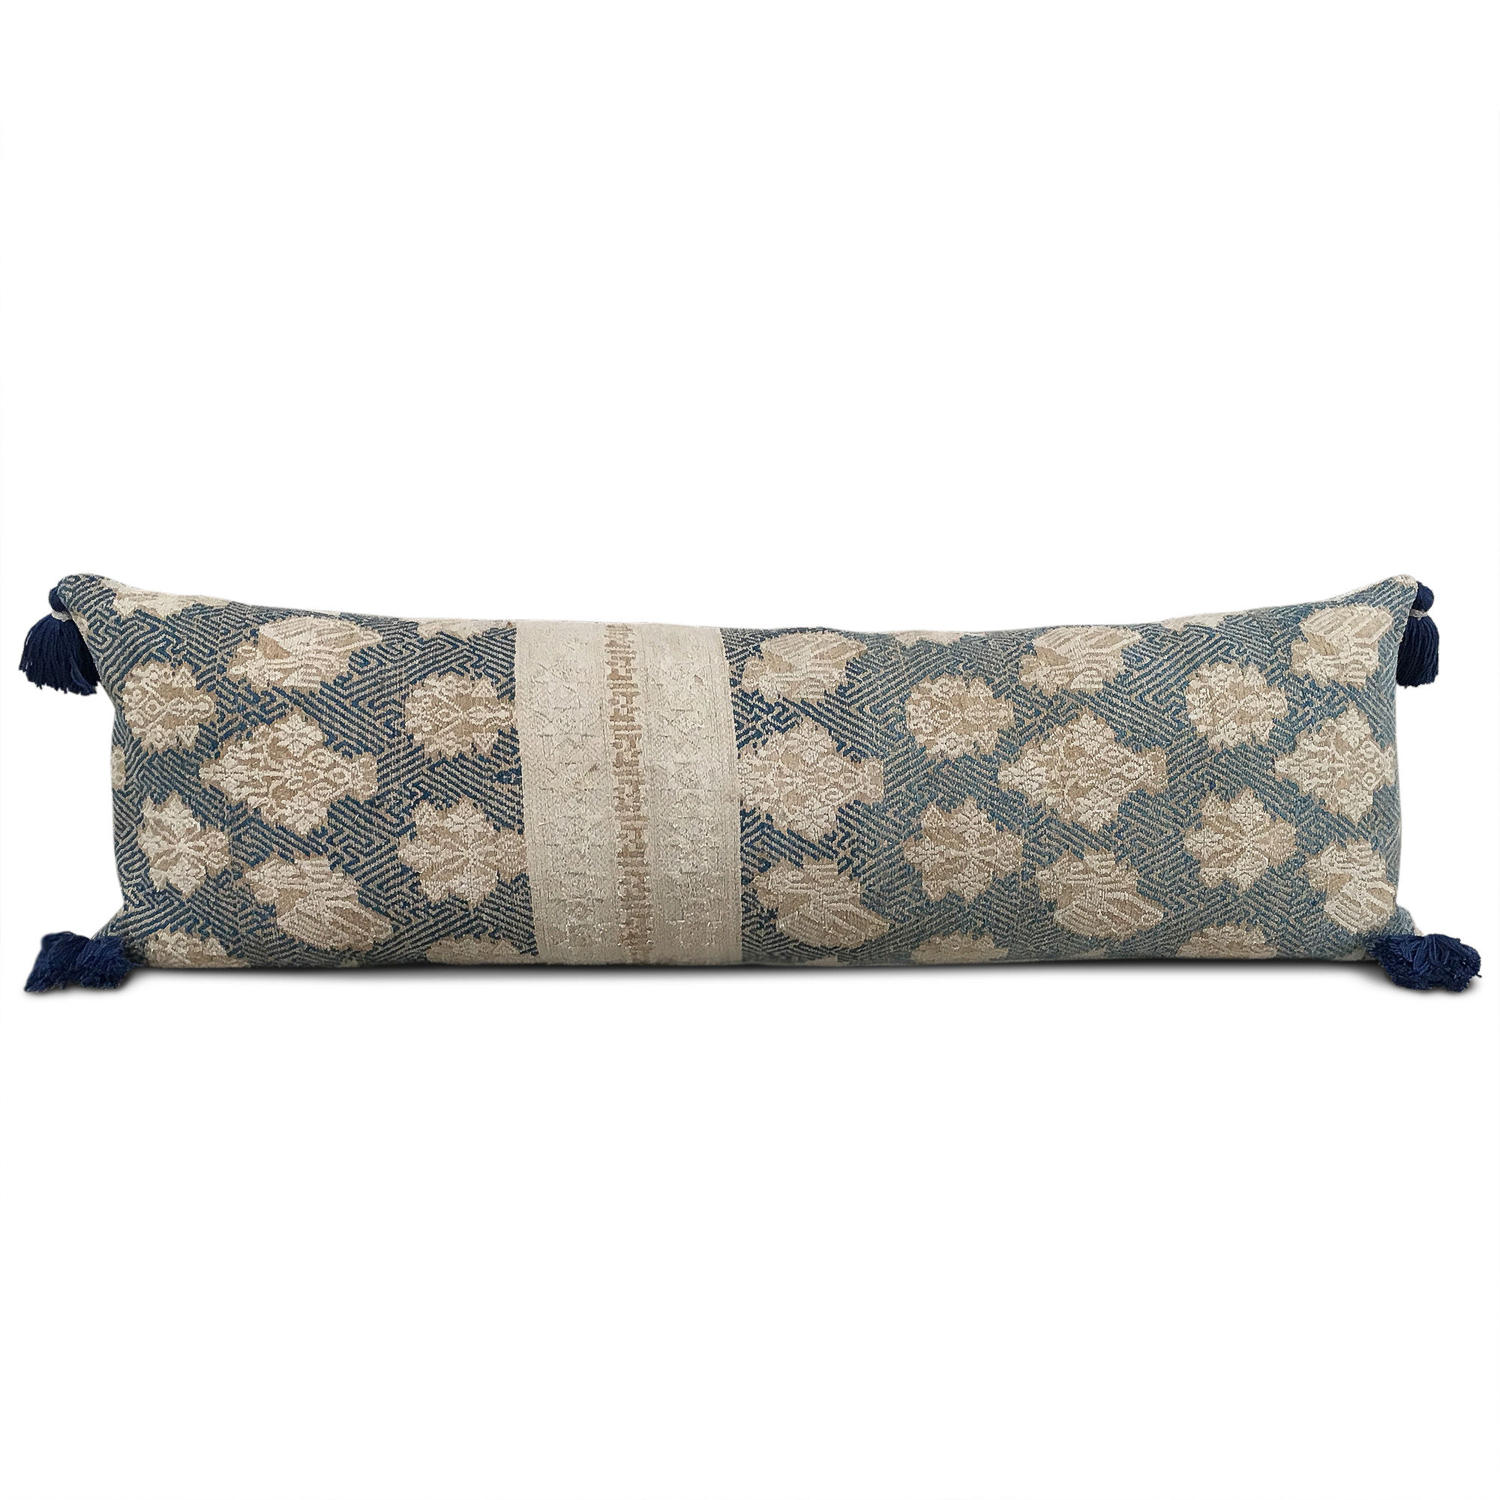 Mulao Wedding Blanket Cushion with Tassels